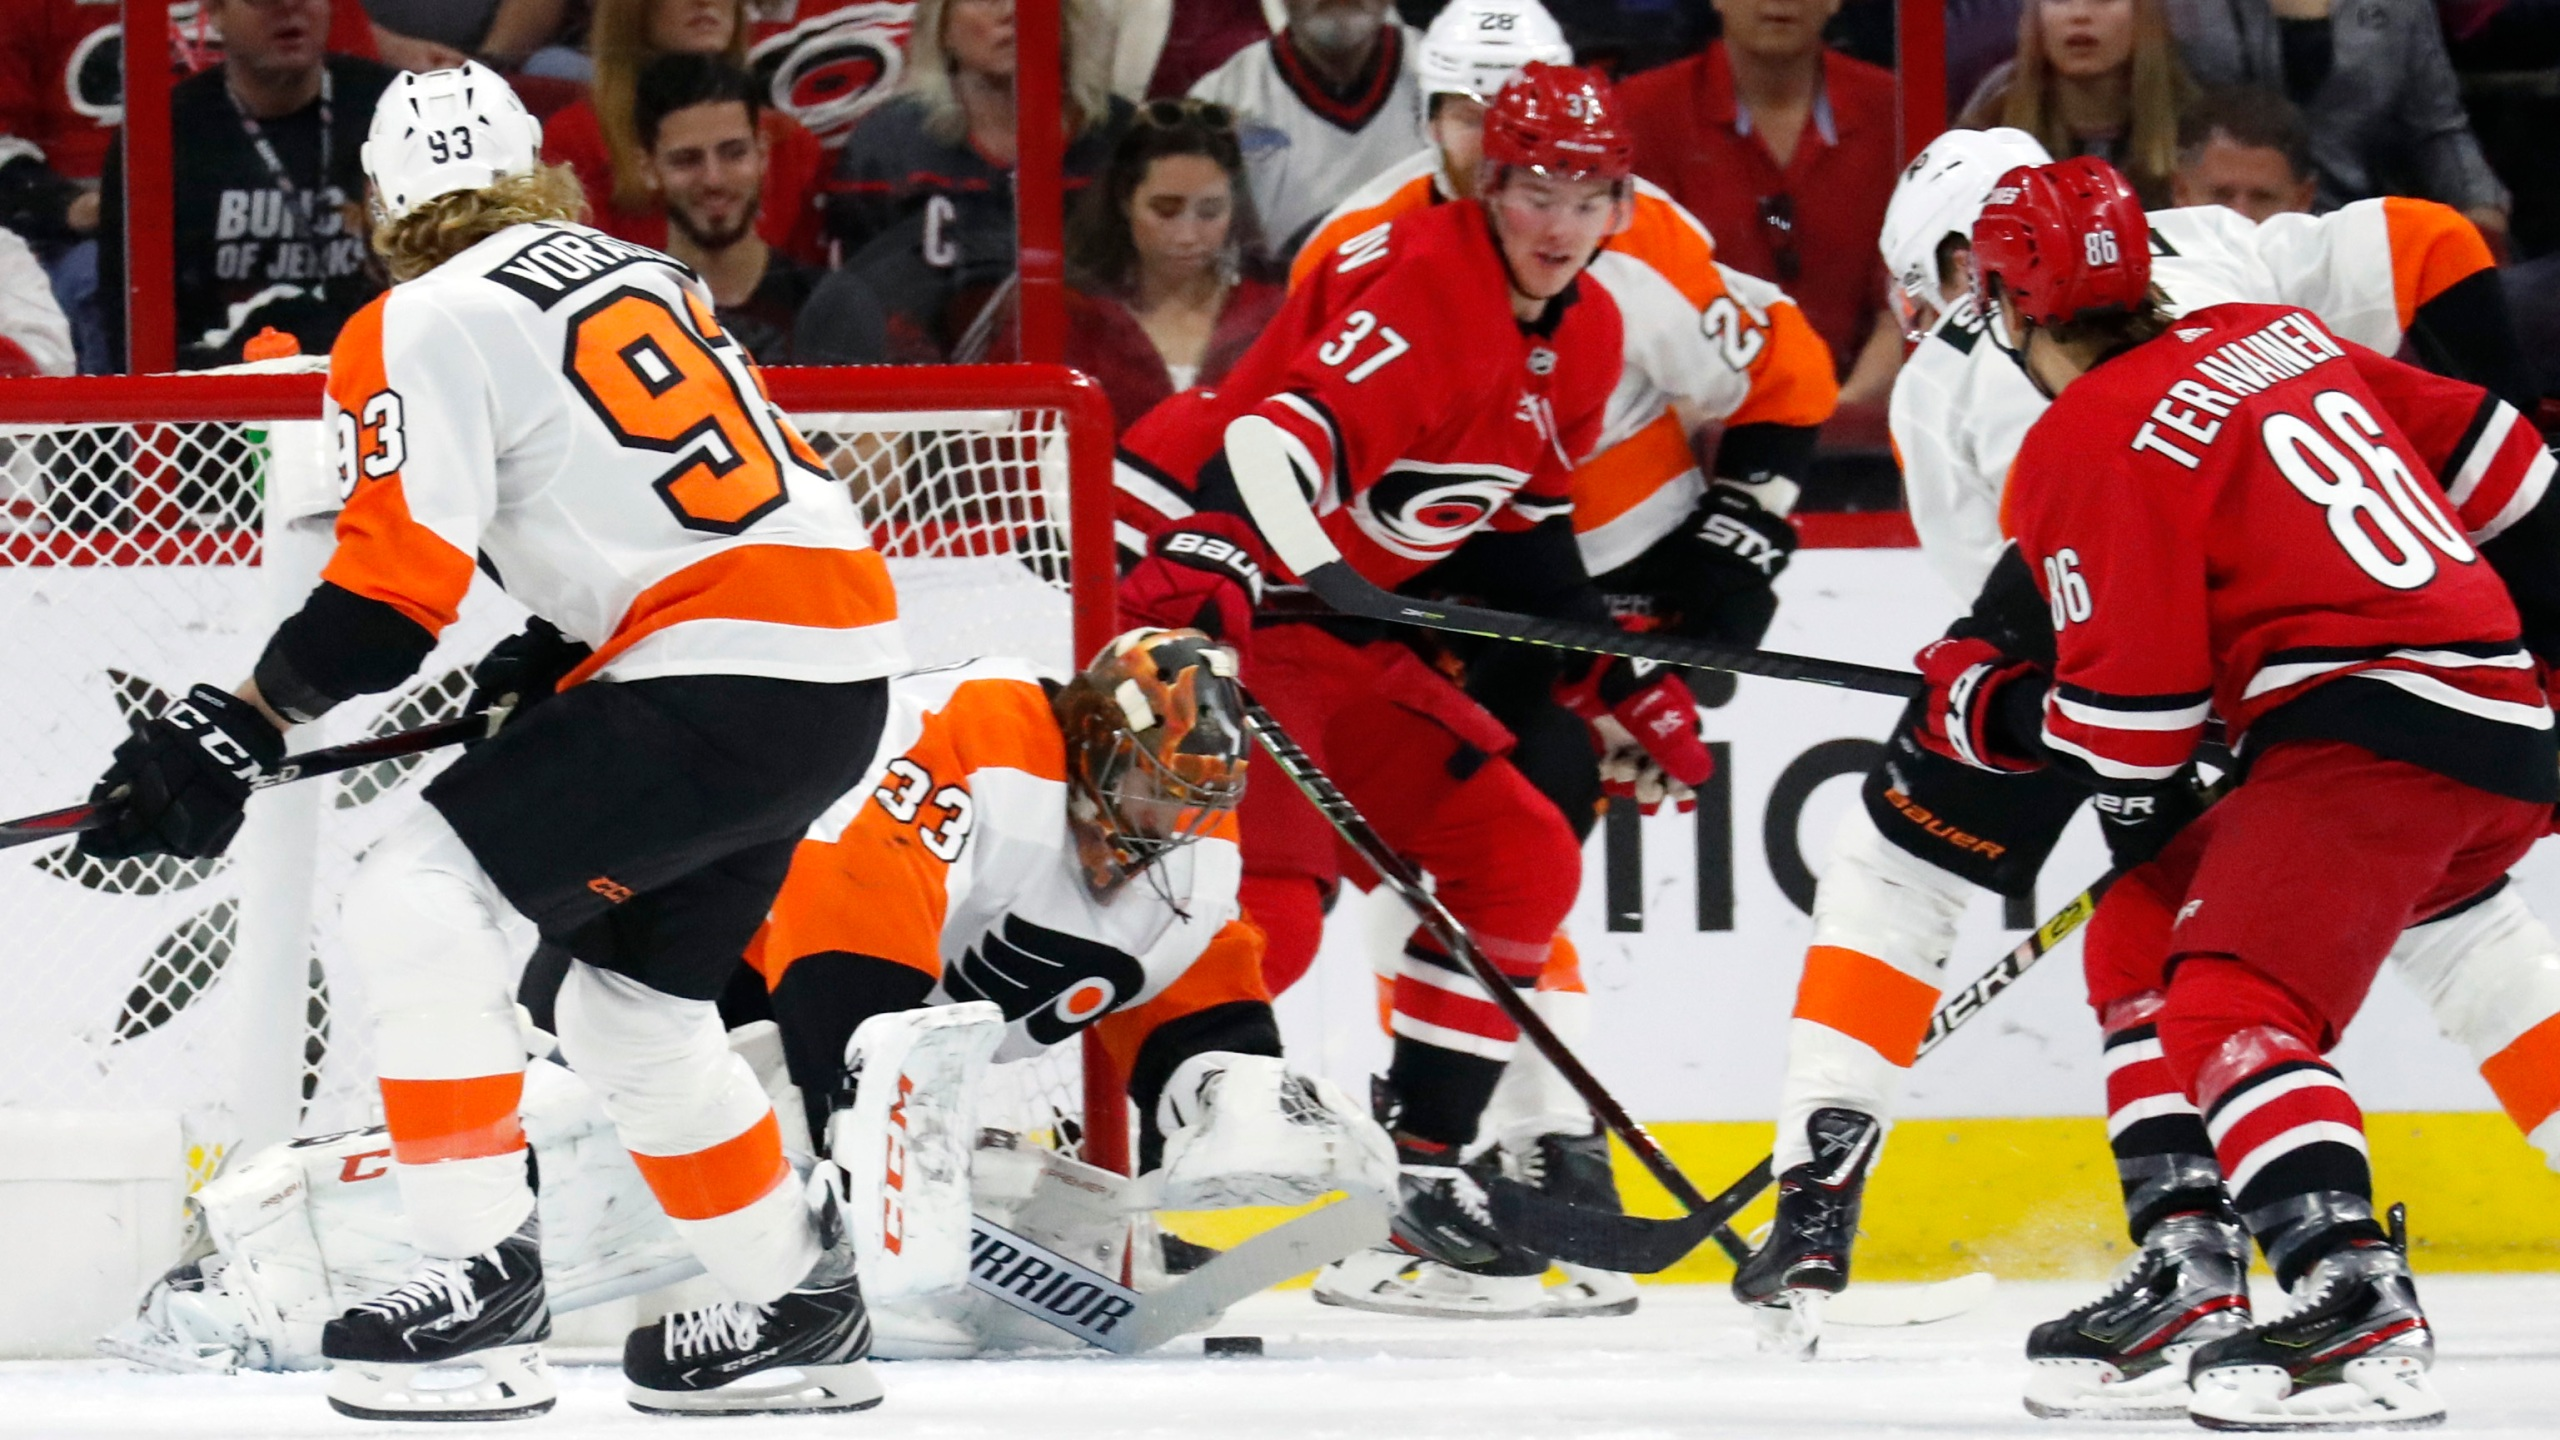 Flyers_Hurricanes_Hockey_80980-159532.jpg52142105